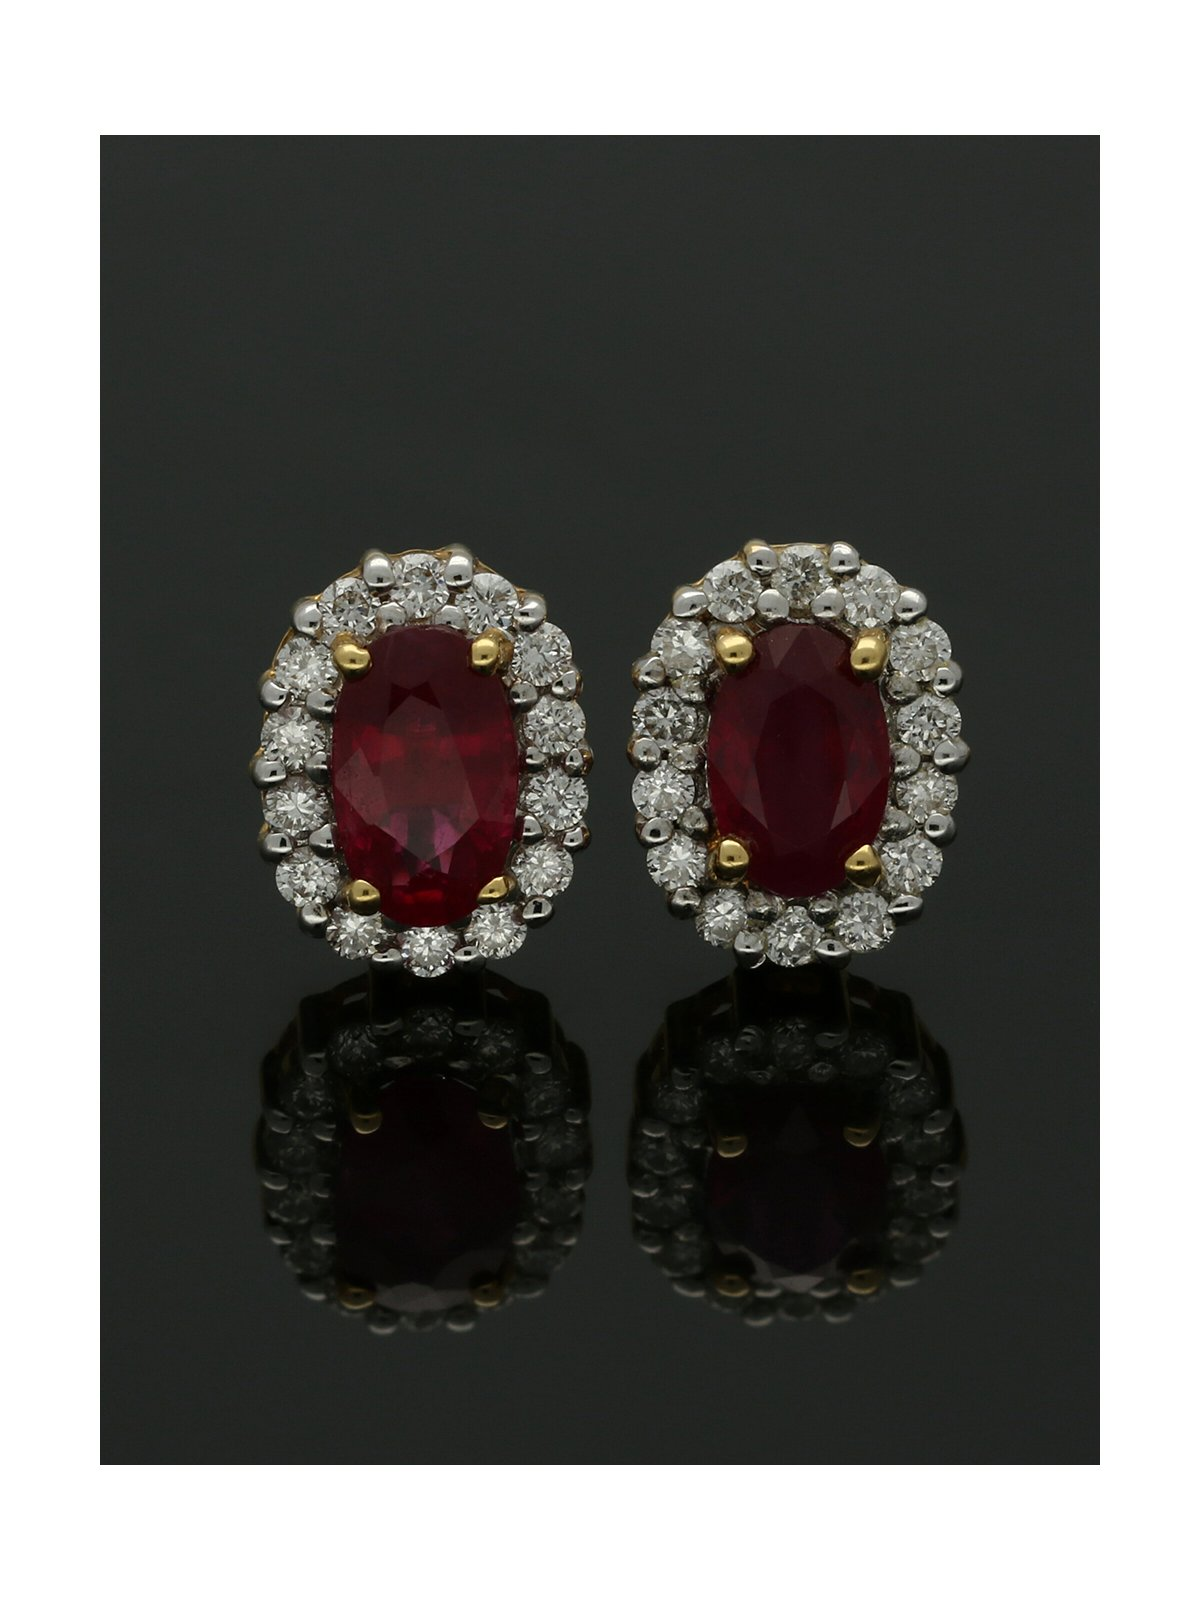 18ct Yellow & White Gold Ruby & Diamond Cluster Stud Earrings